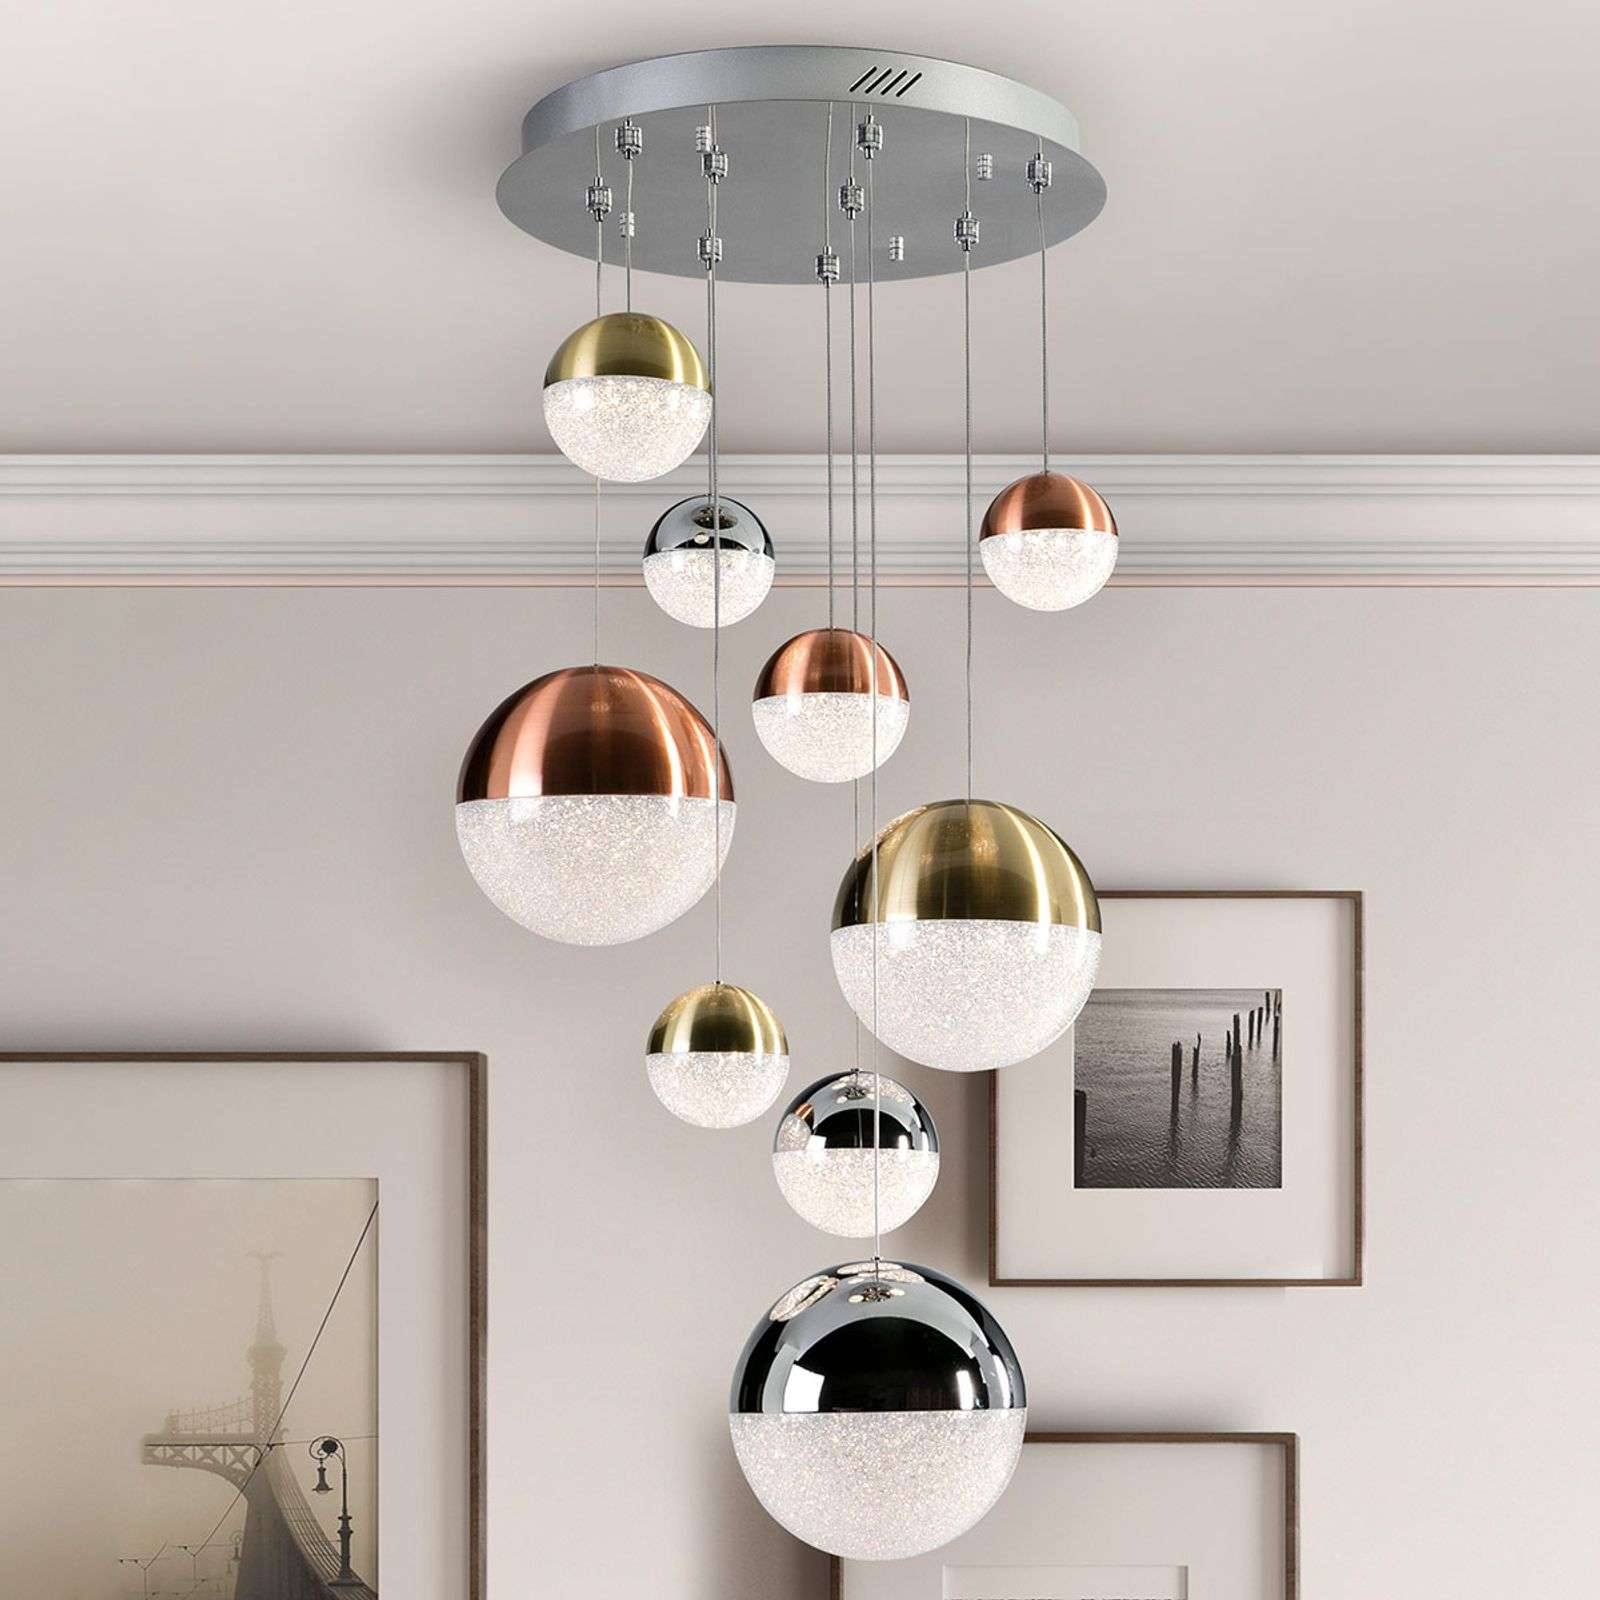 LED hanglamp met 9 lampjes, multicolour